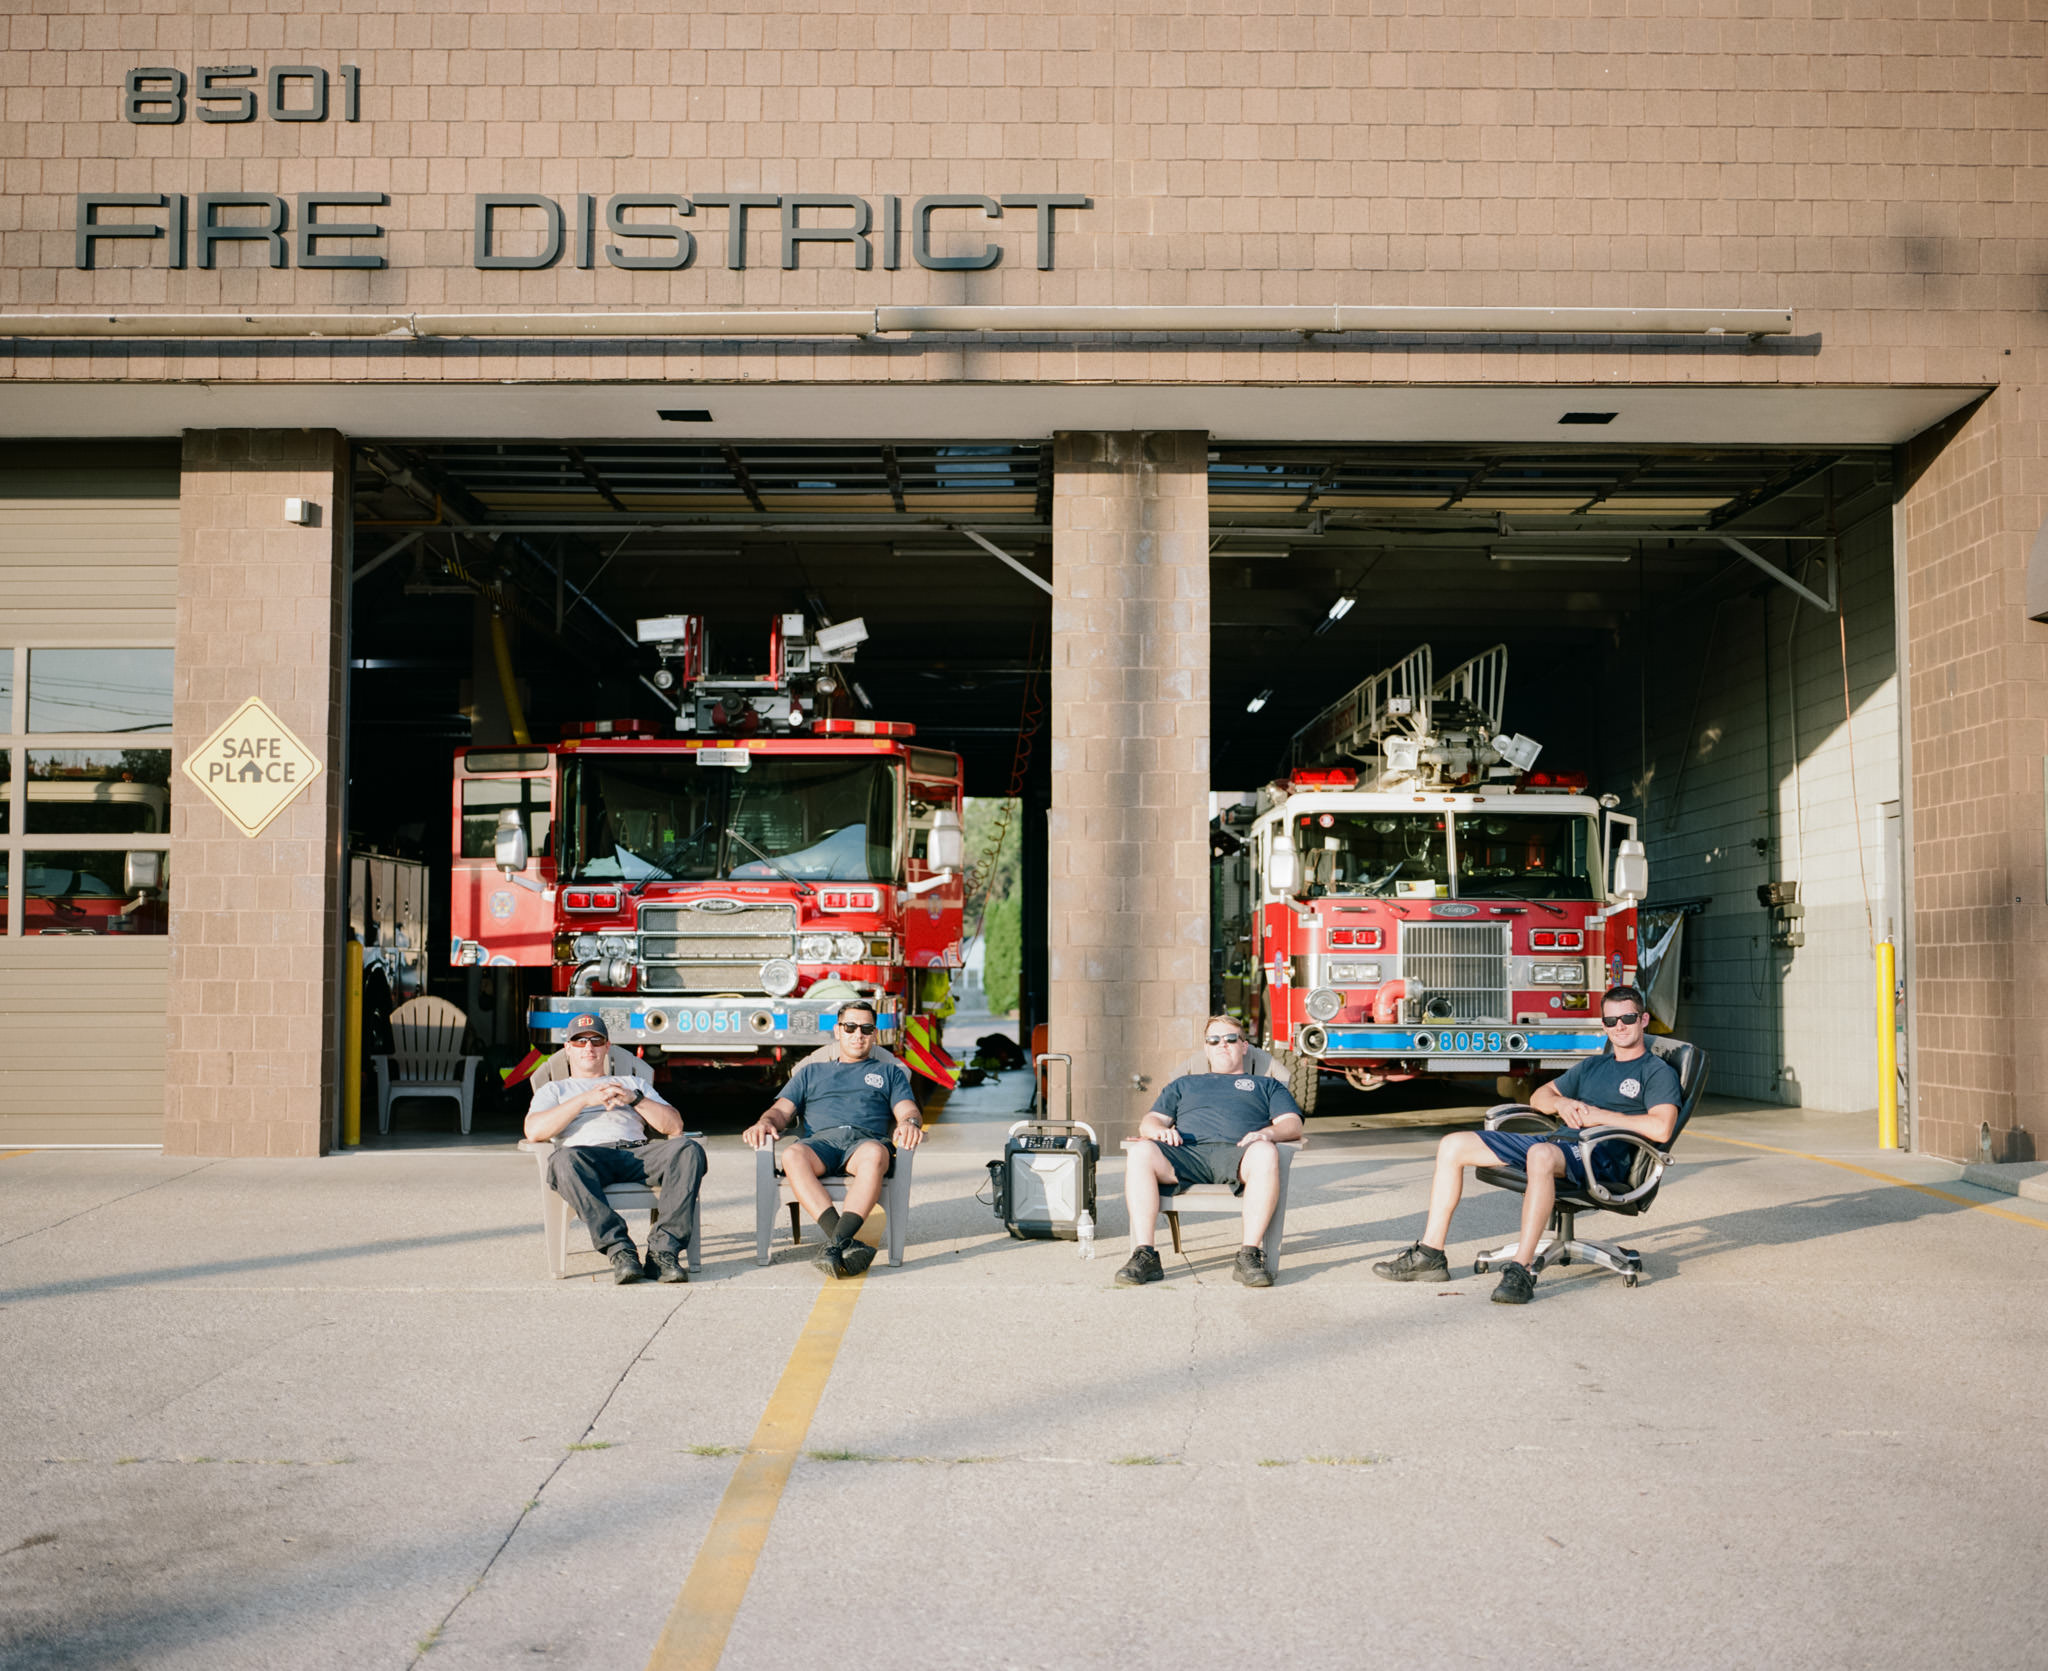 Image of Kentucky Firemen taken with the Mamiya 7 and 80mm f/4 lens